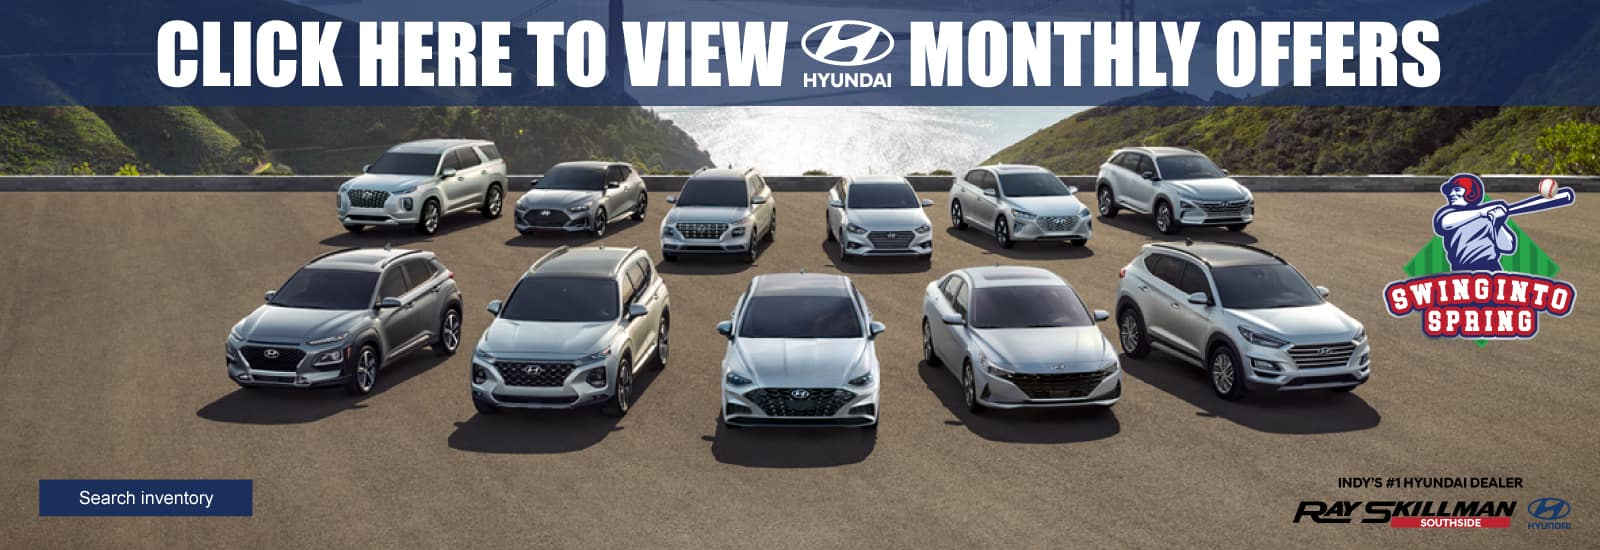 Click-Here-to-View-Hyundai-Monthly-Offers-Web-Banner-April